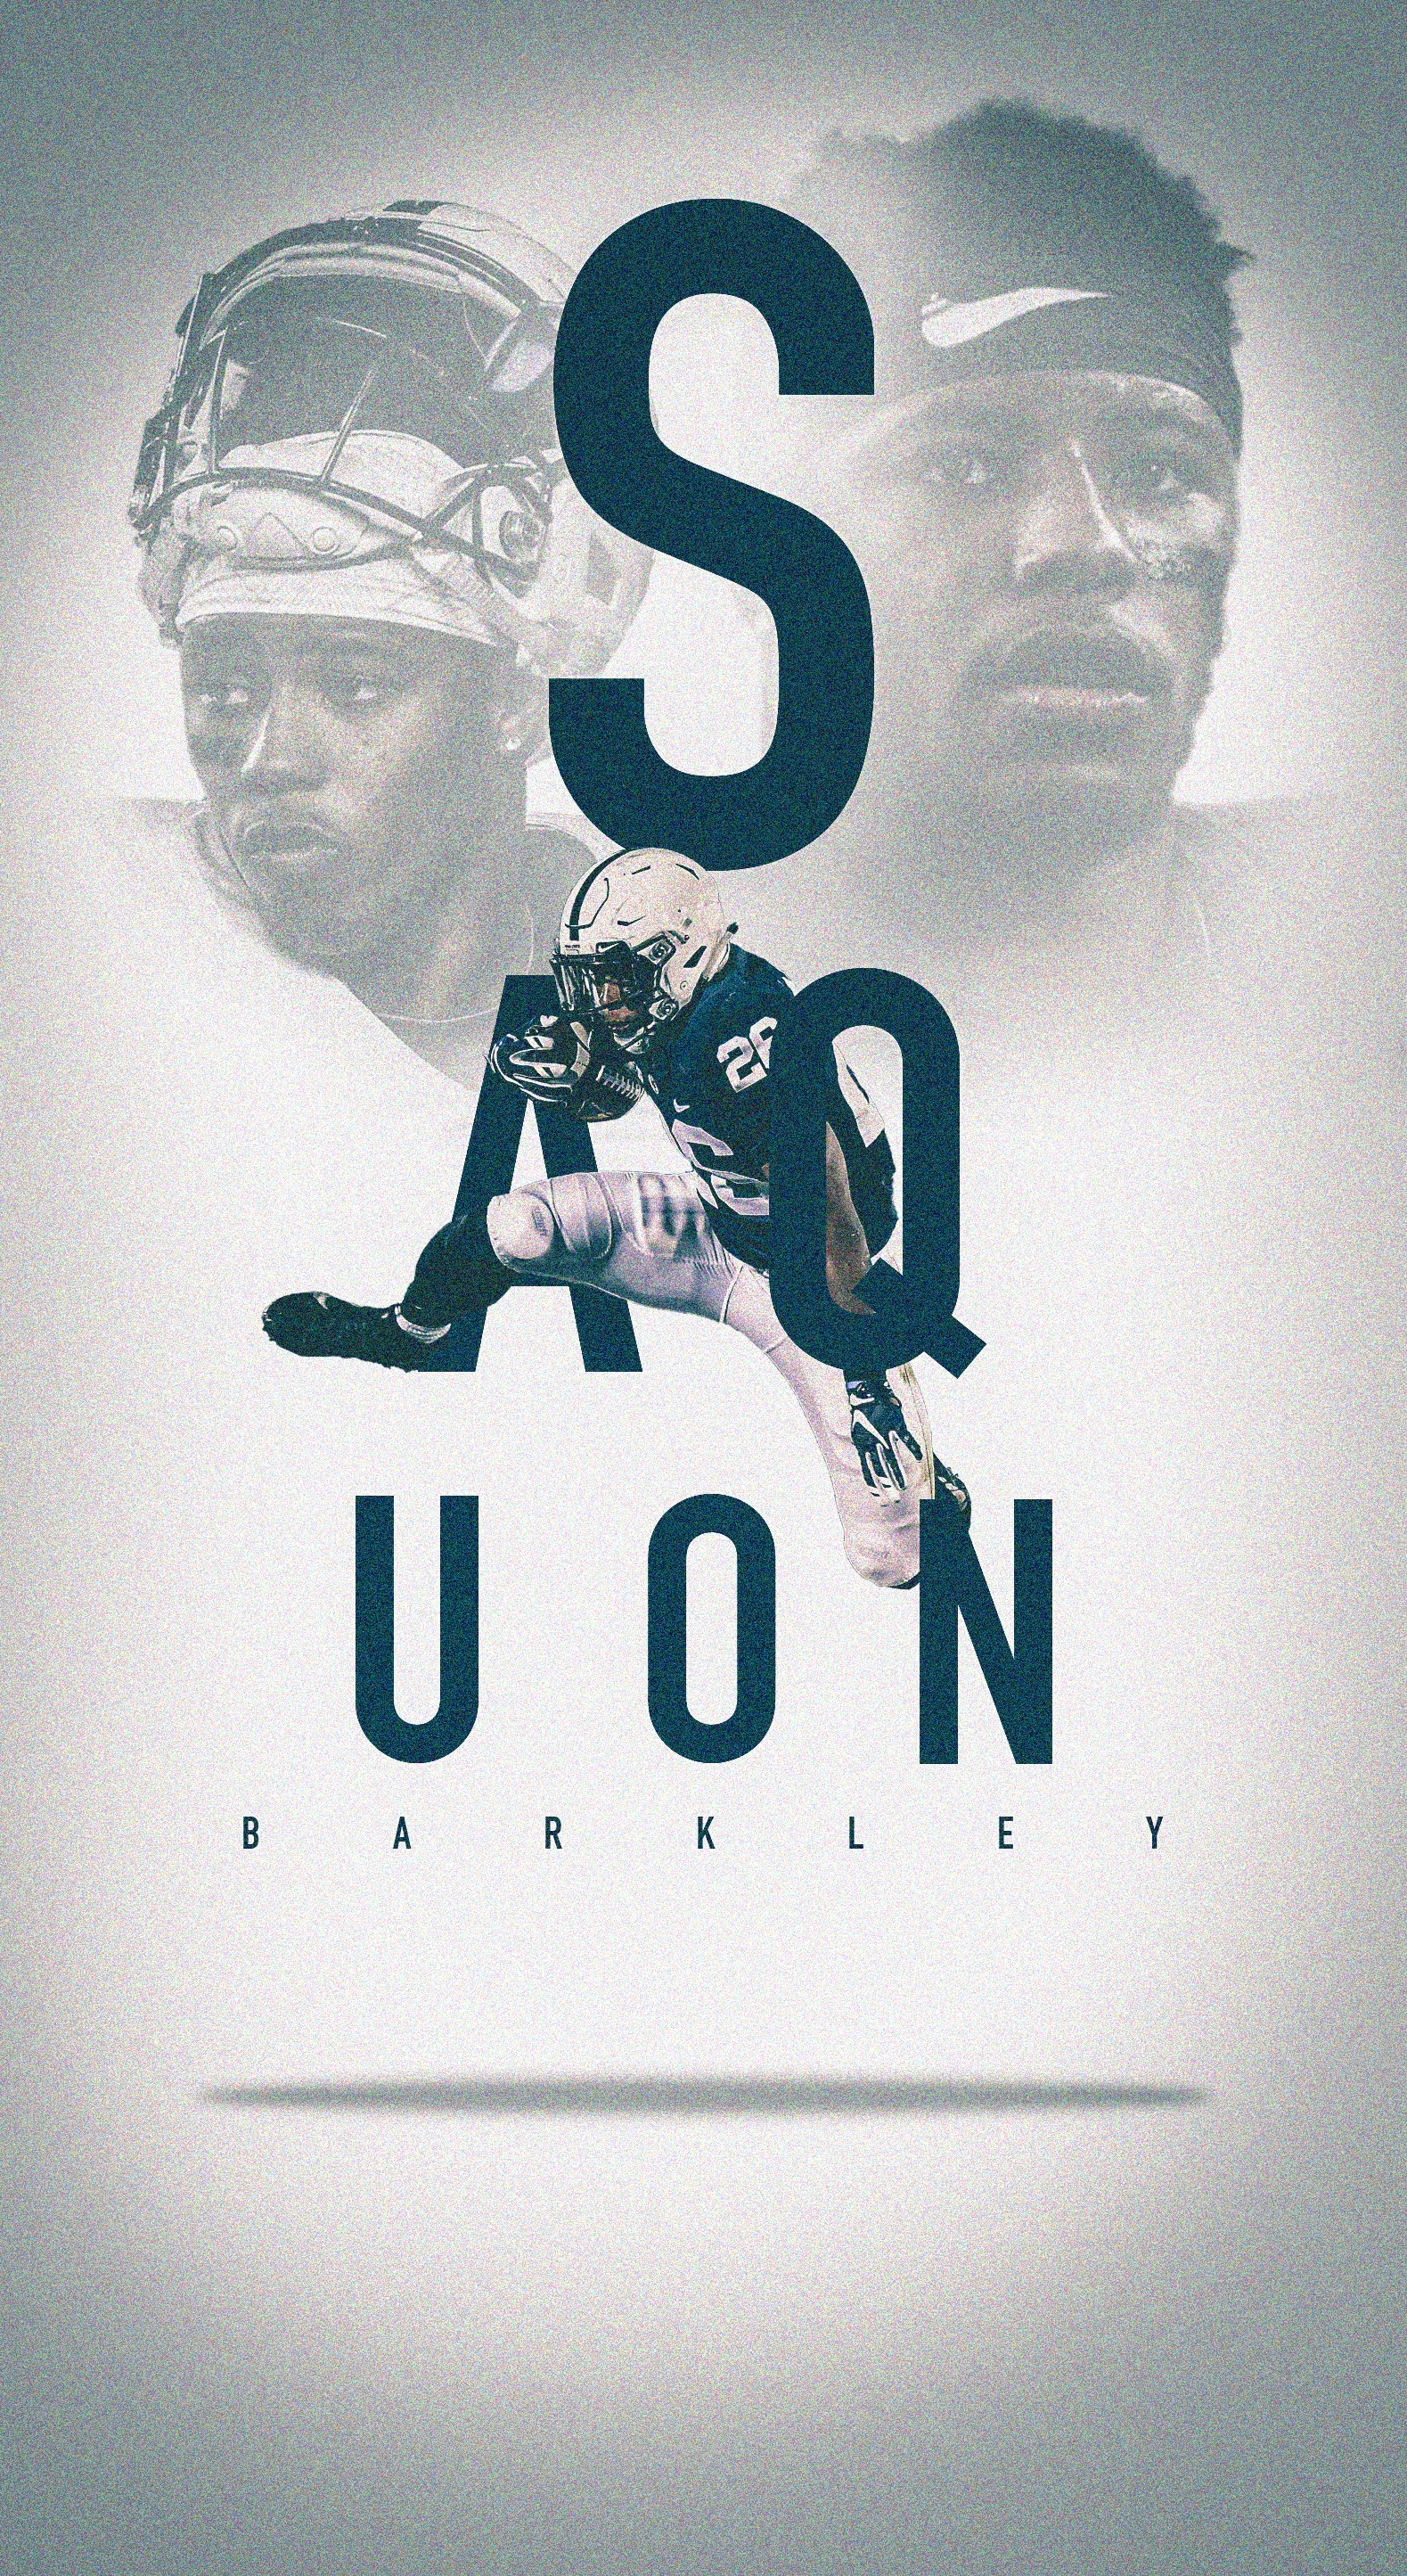 Check Out This Behance Project Saquon Barkley Ios Wallpaper Https Www Behance Net Gallery 62239915 Saqu Nfl Football Wallpaper Giants Football Penn State